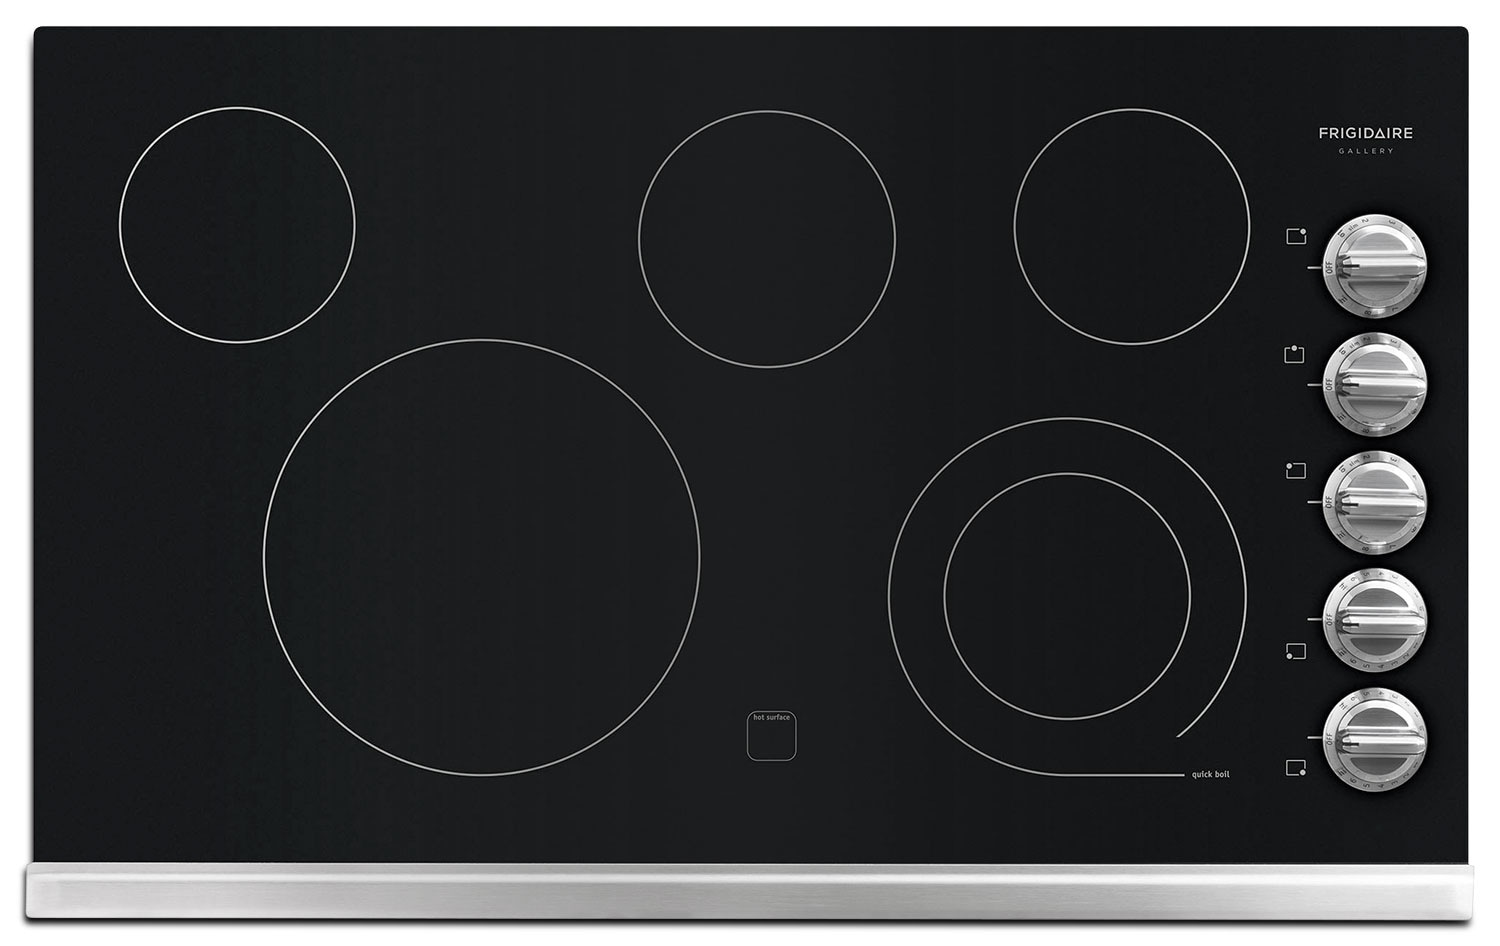 Cooking Products - Frigidaire Gallery Electric Cooktop FGEC3645PS